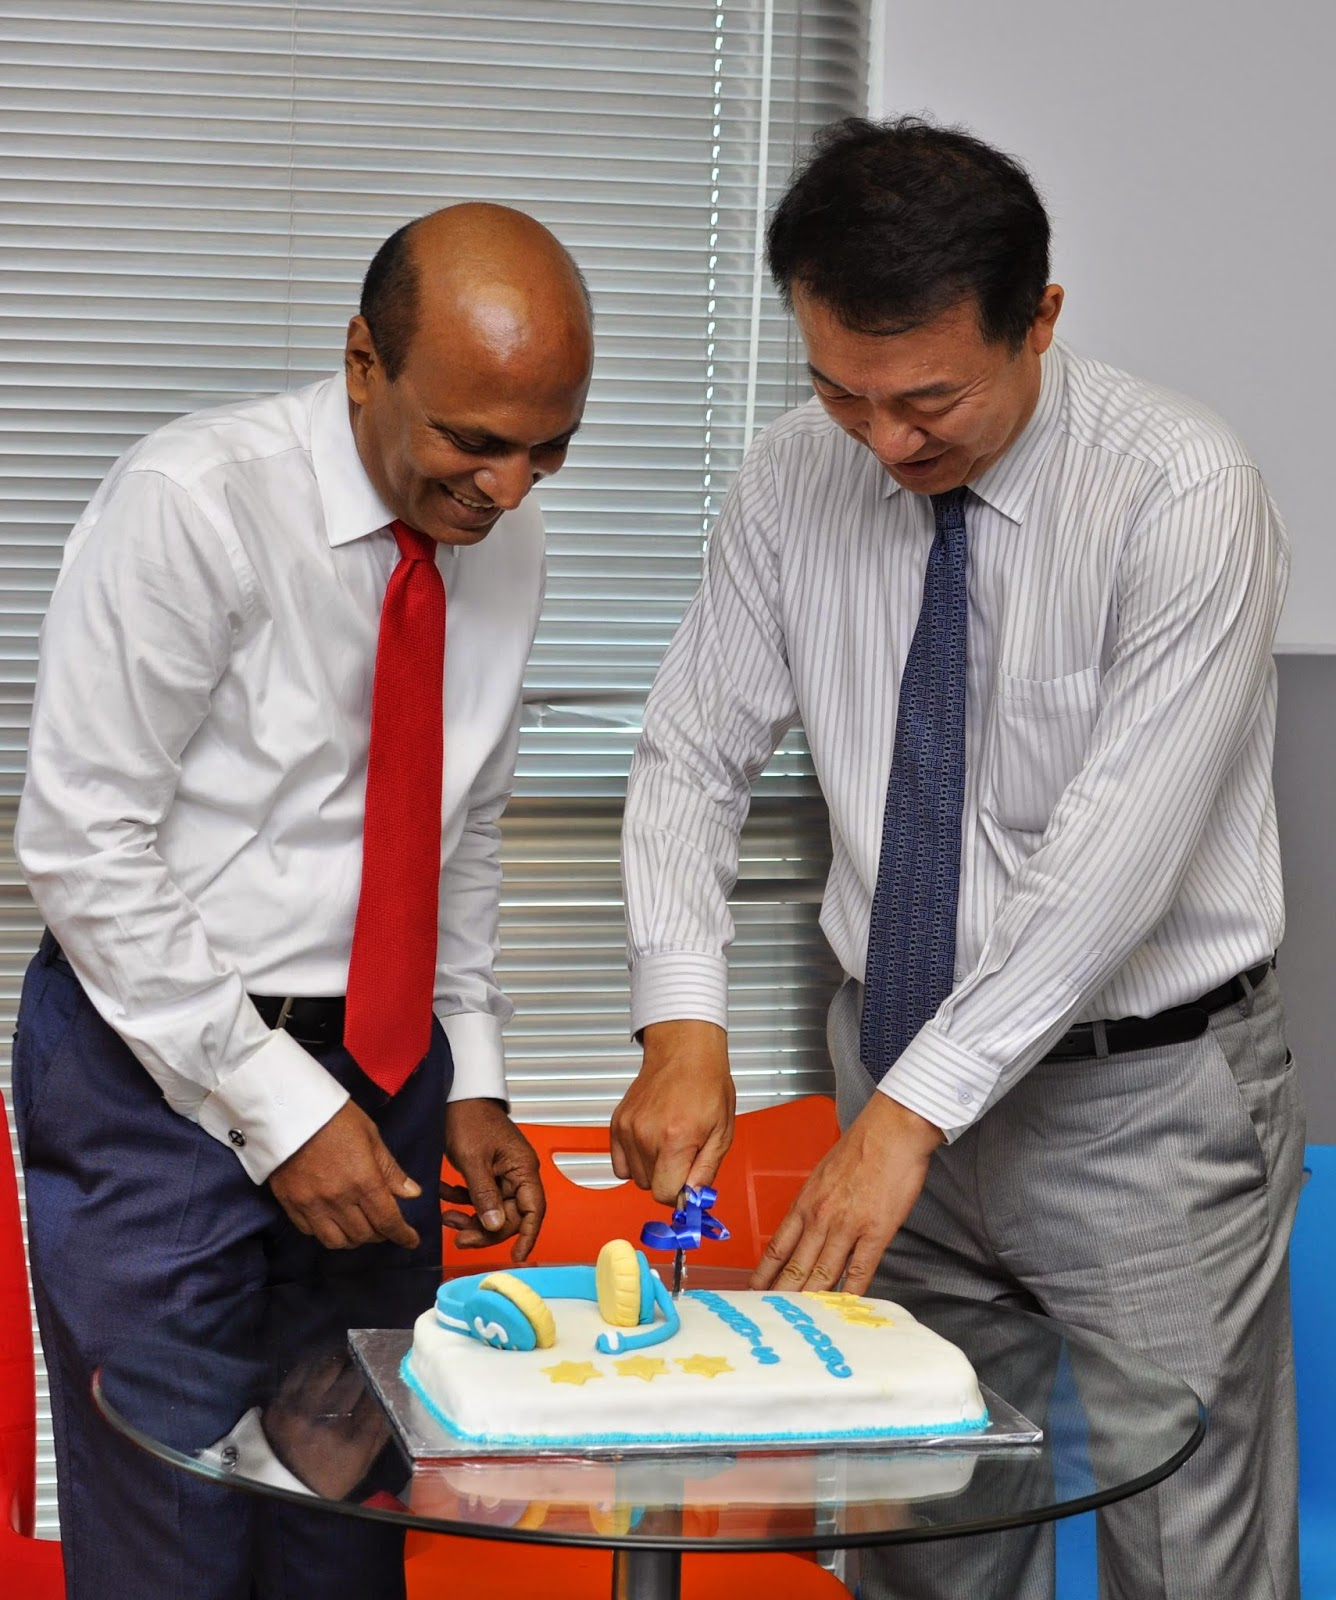 H.K. Chang, Managing Director, Samsung Electronics India - Sri Lanka Branch Office & Omer A Fareed - CEO, Amazai Group cut a celebratory cake to mark the occasion